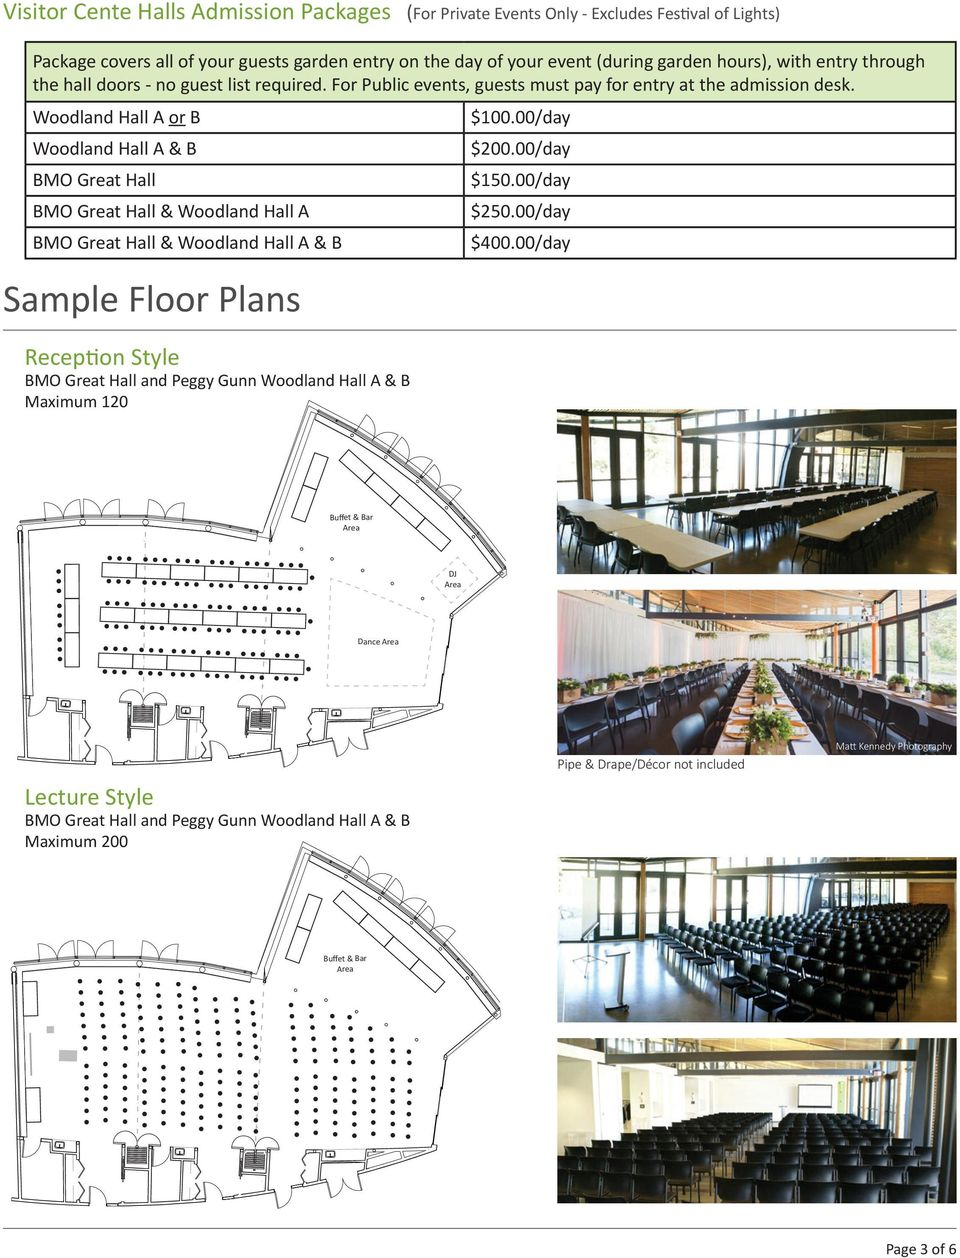 Woodland Hall A or B Woodland Hall A & B BMO Great Hall BMO Great Hall & Woodland Hall A BMO Great Hall & Woodland Hall A & B Sample Floor Plans Reception Style BMO Great Hall and Peggy Gunn Woodland